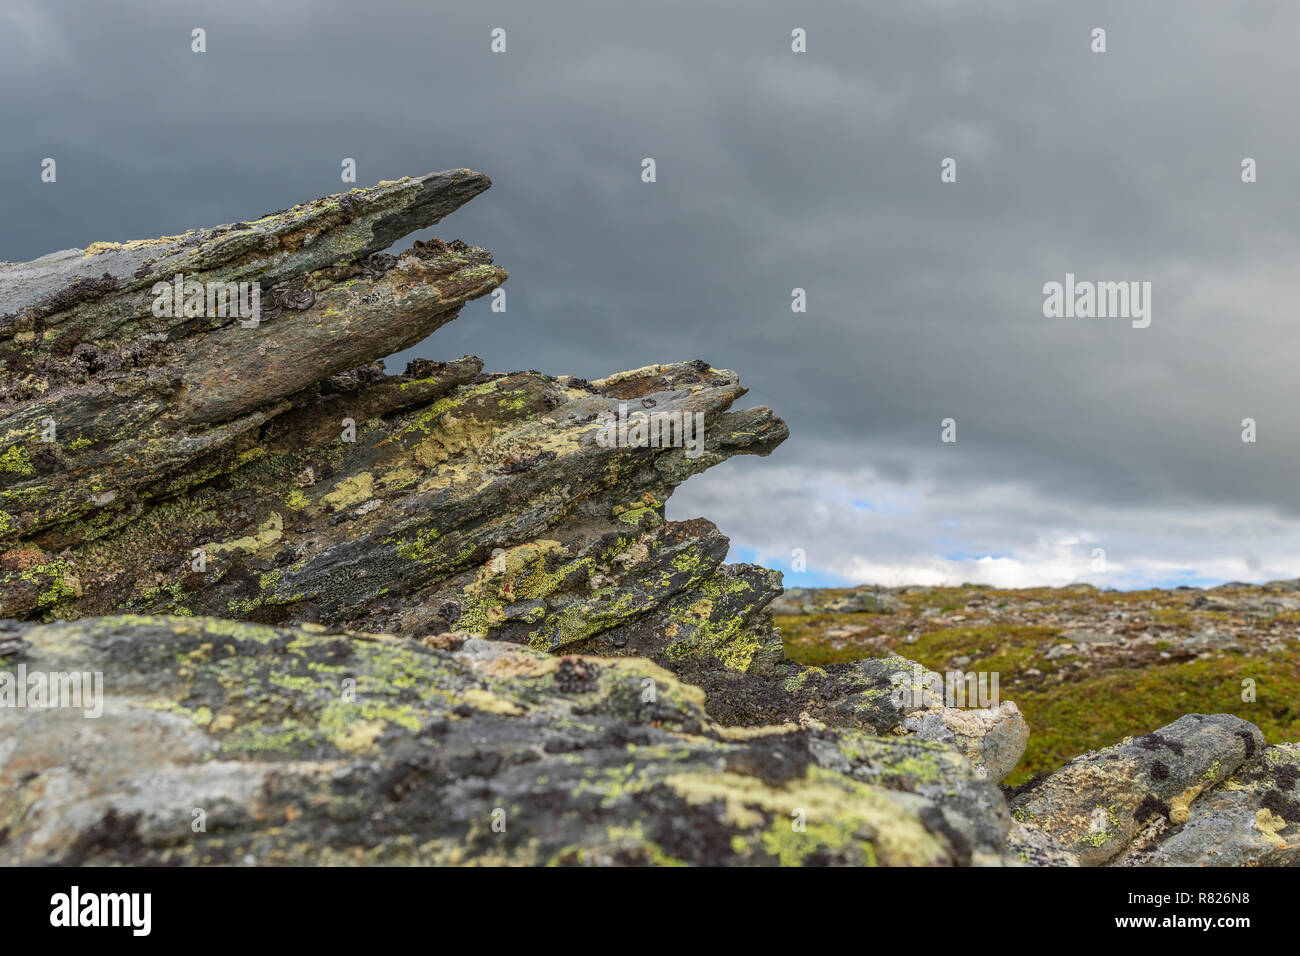 Pointy rock formations with lichens - Stock Image